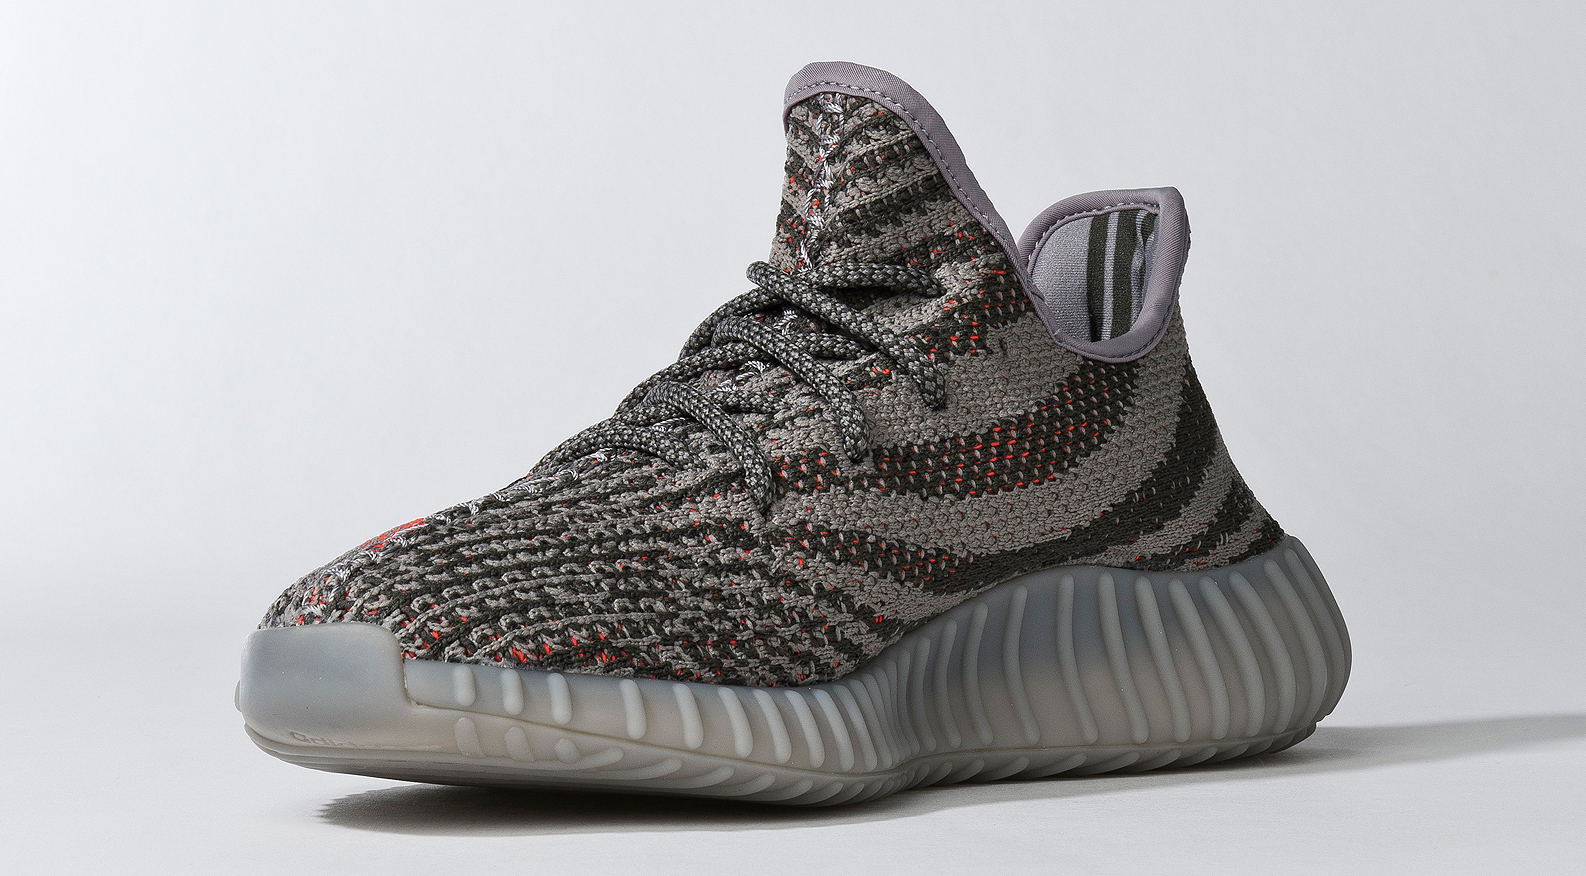 Popular Adidas Yeezy 350 Boost Moonrock Women For Sale Adidas